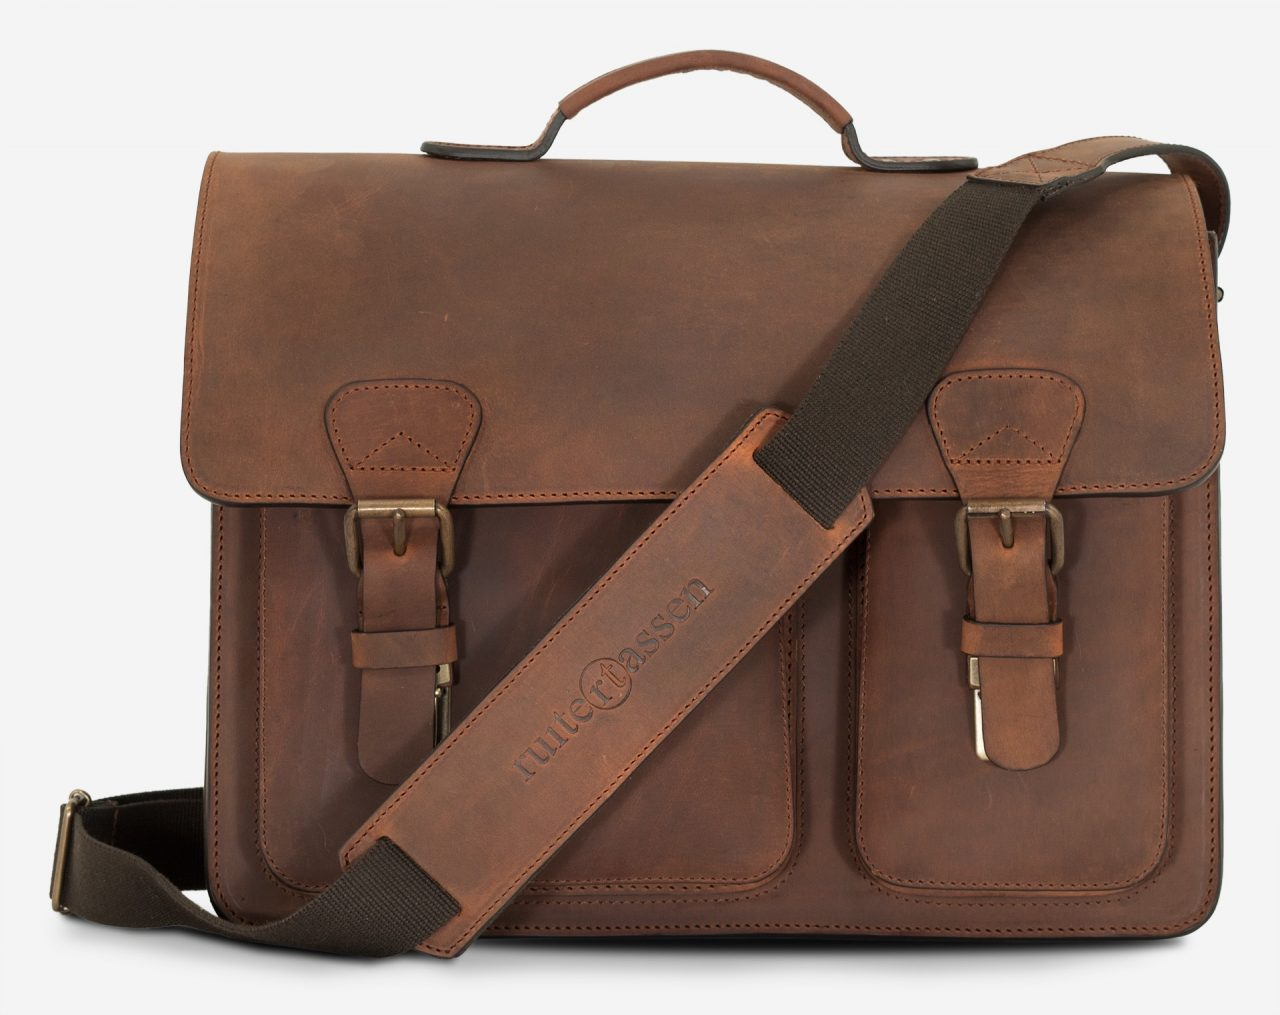 Front view of brown leather satchel briefcase with asymmetric front pockets and shoulder strap.